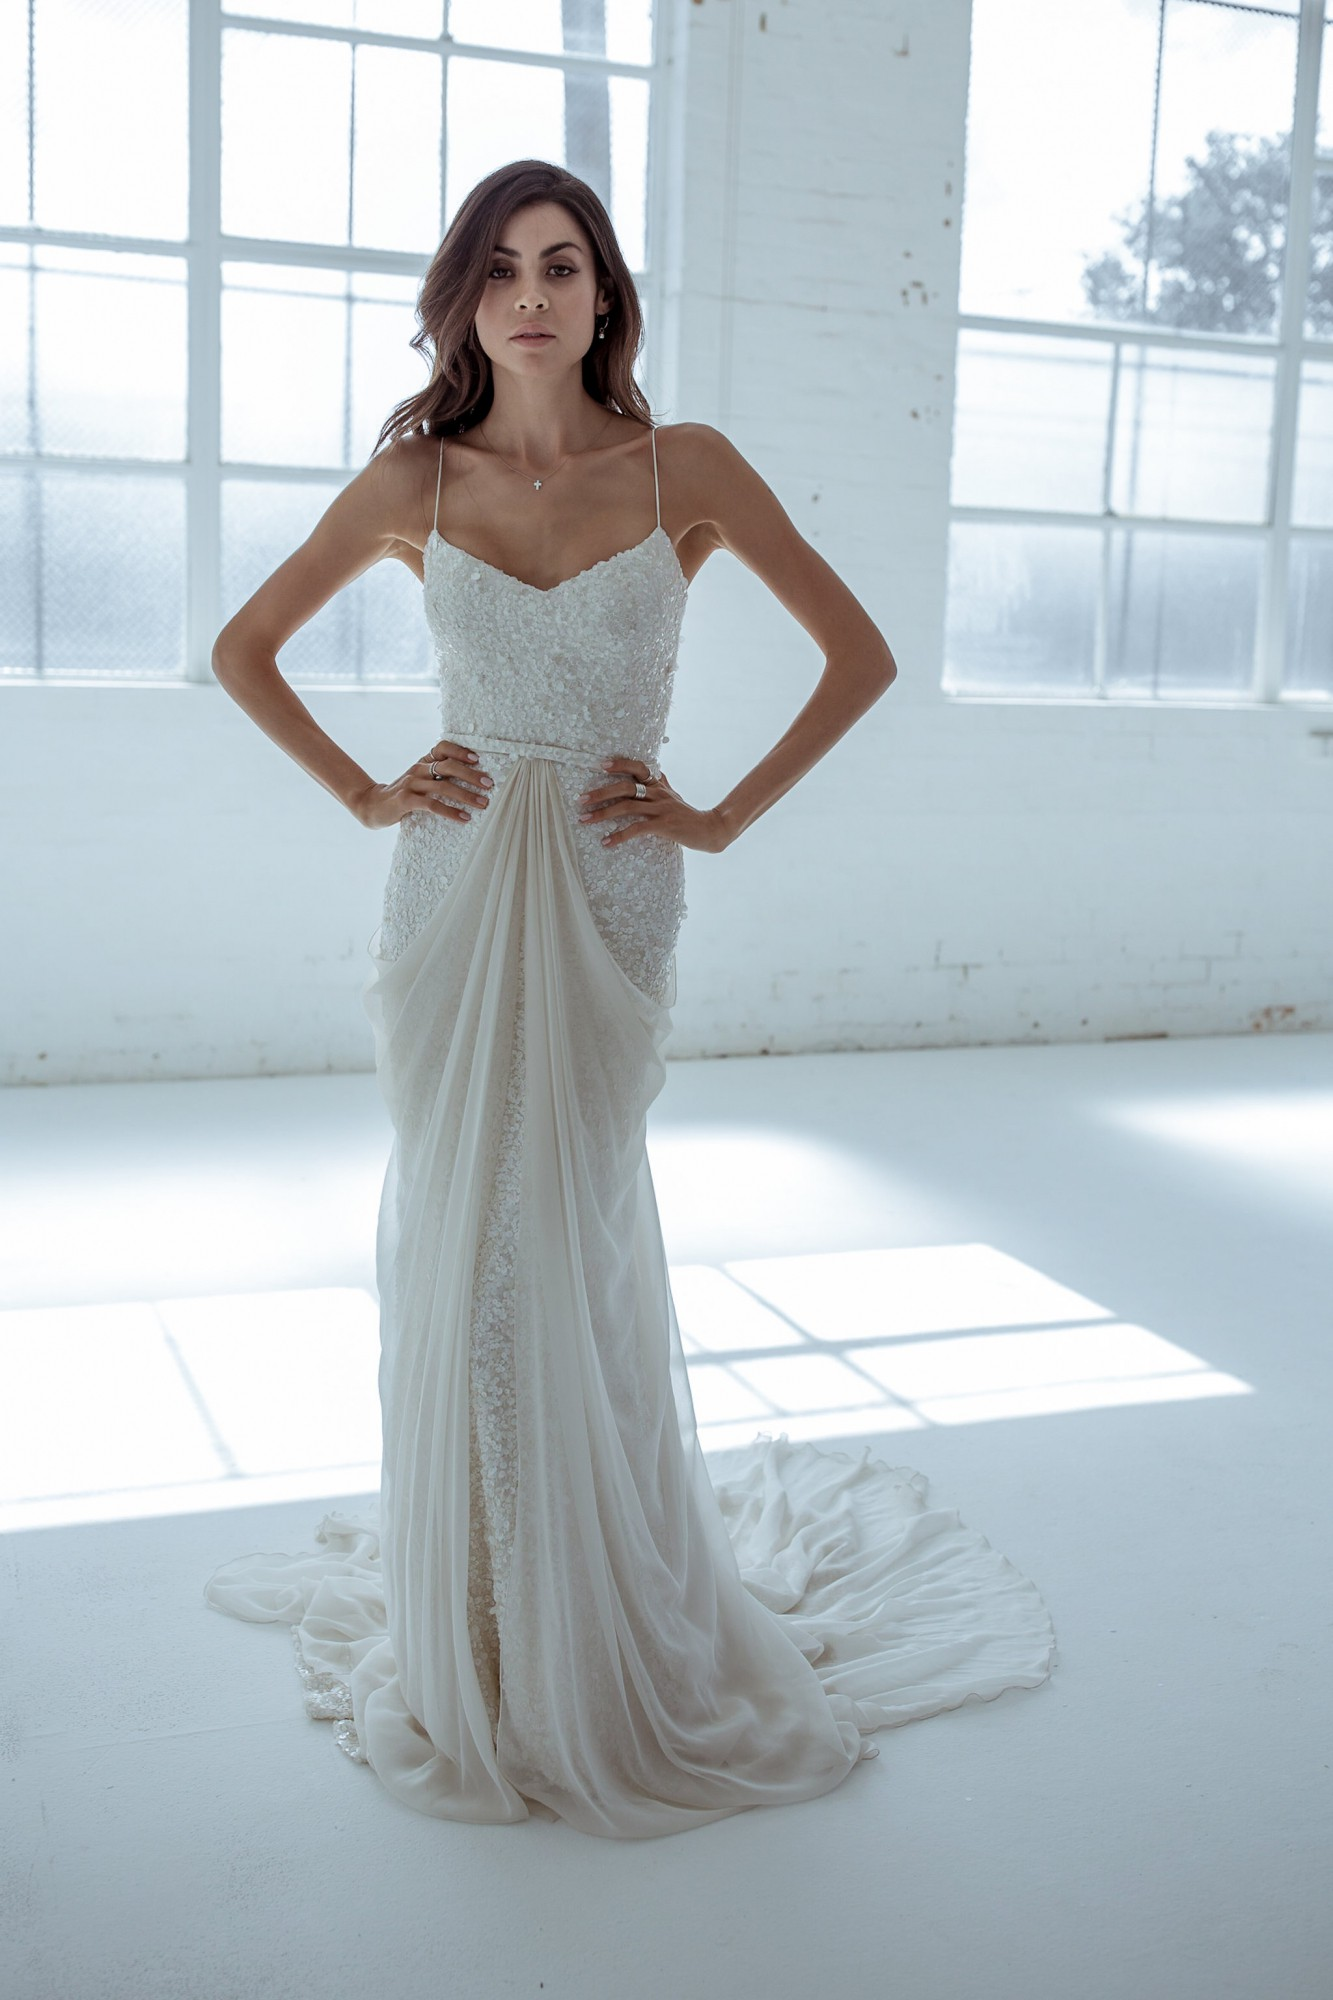 Old Fashioned 2nd Hand Bridal Gowns Model - Wedding Dress Ideas ...